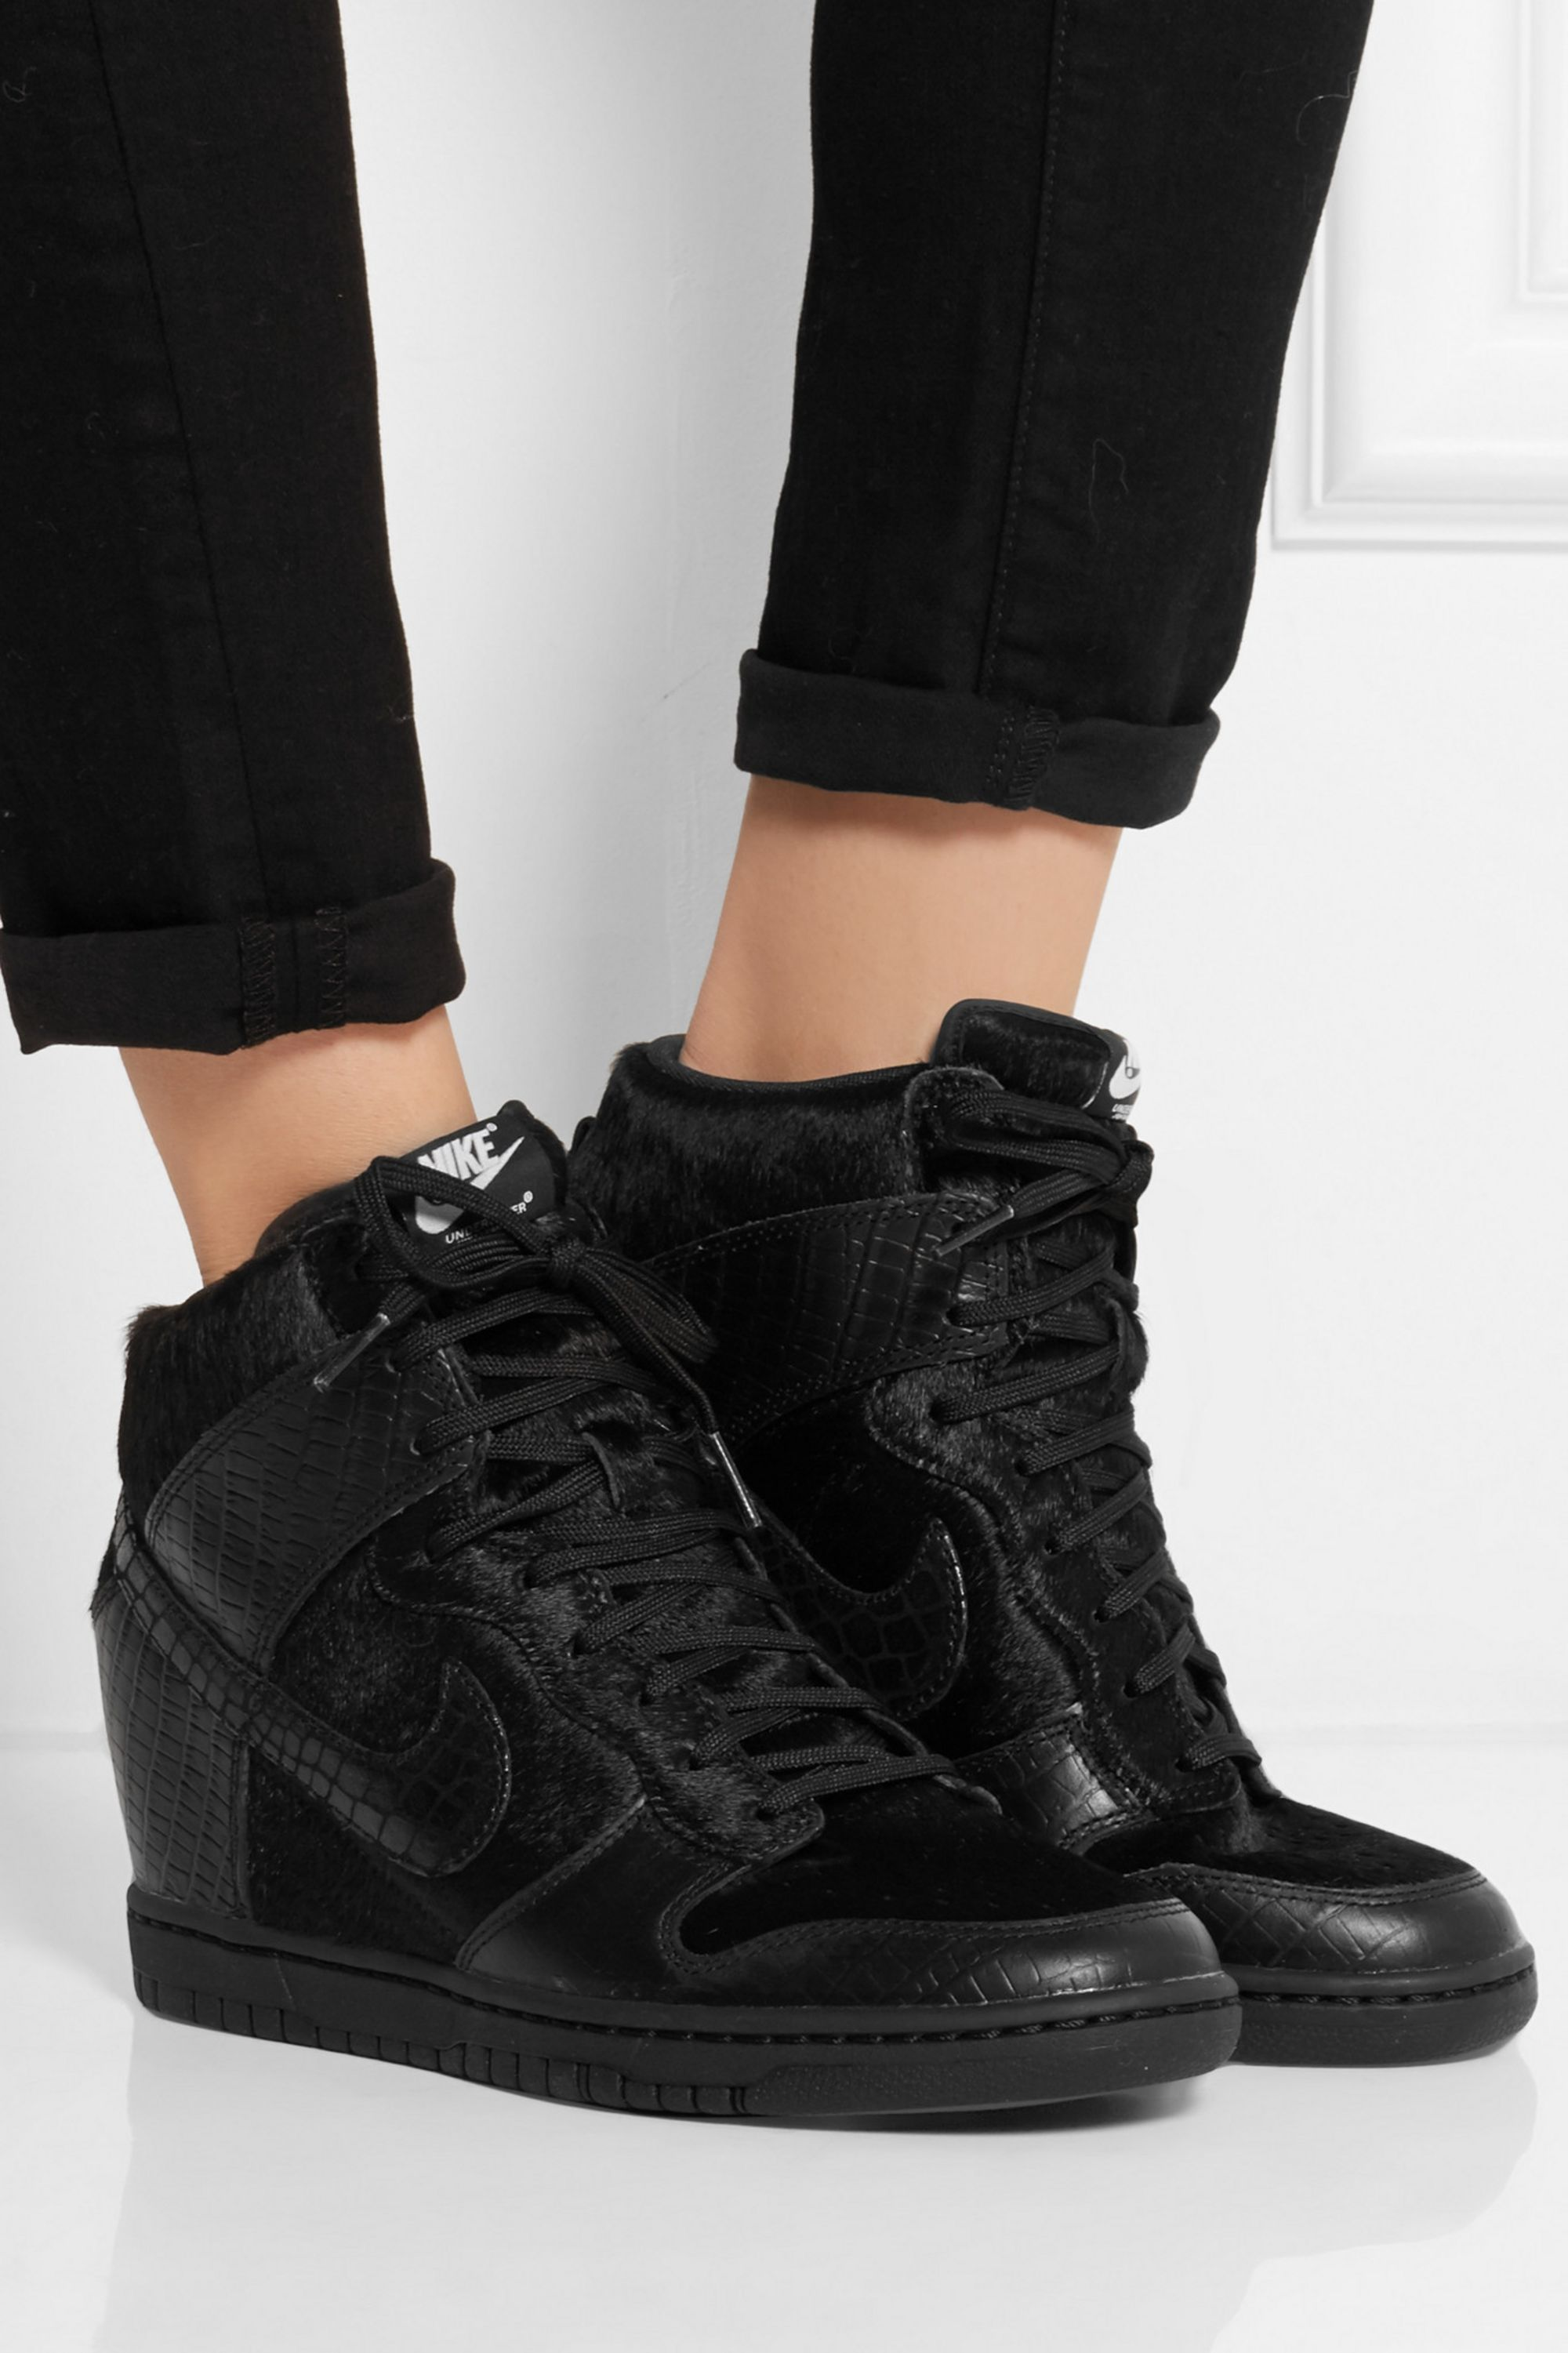 Nike + Undercover Dunk Sky Hi leather and faux calf hair sneakers